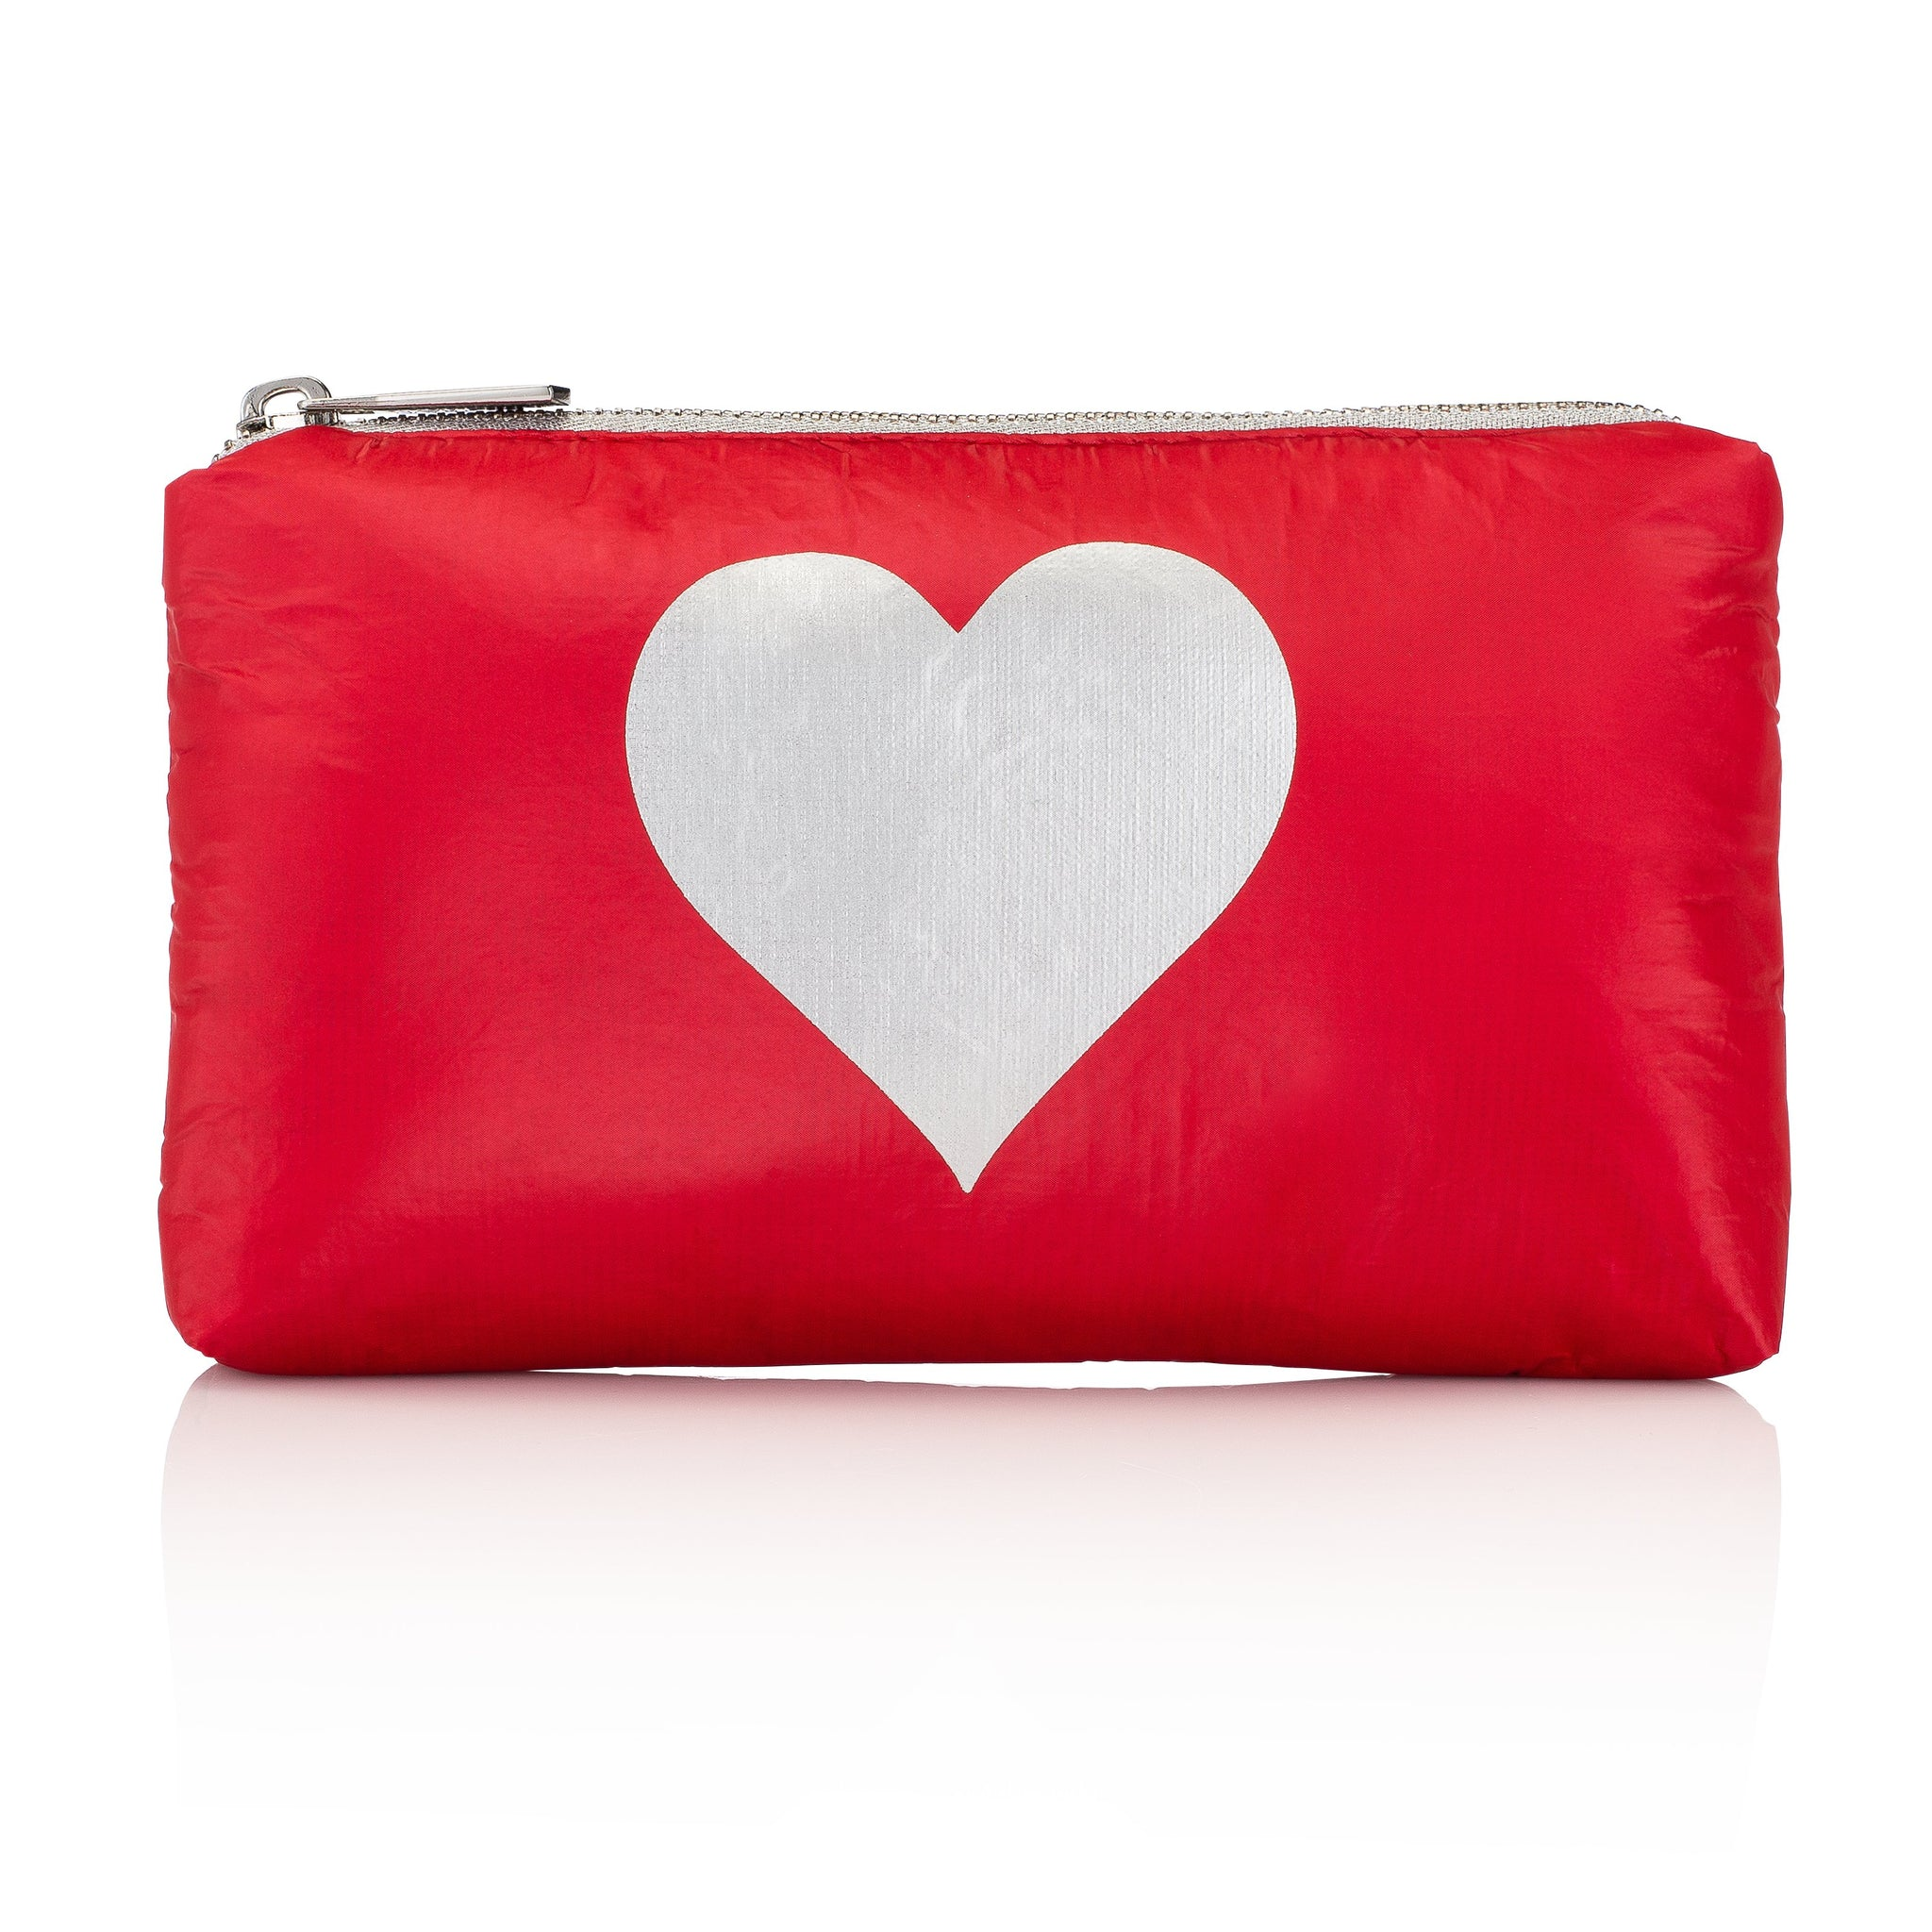 Mini Padded Pack - Chili Pepper Red with Metallic Silver Heart